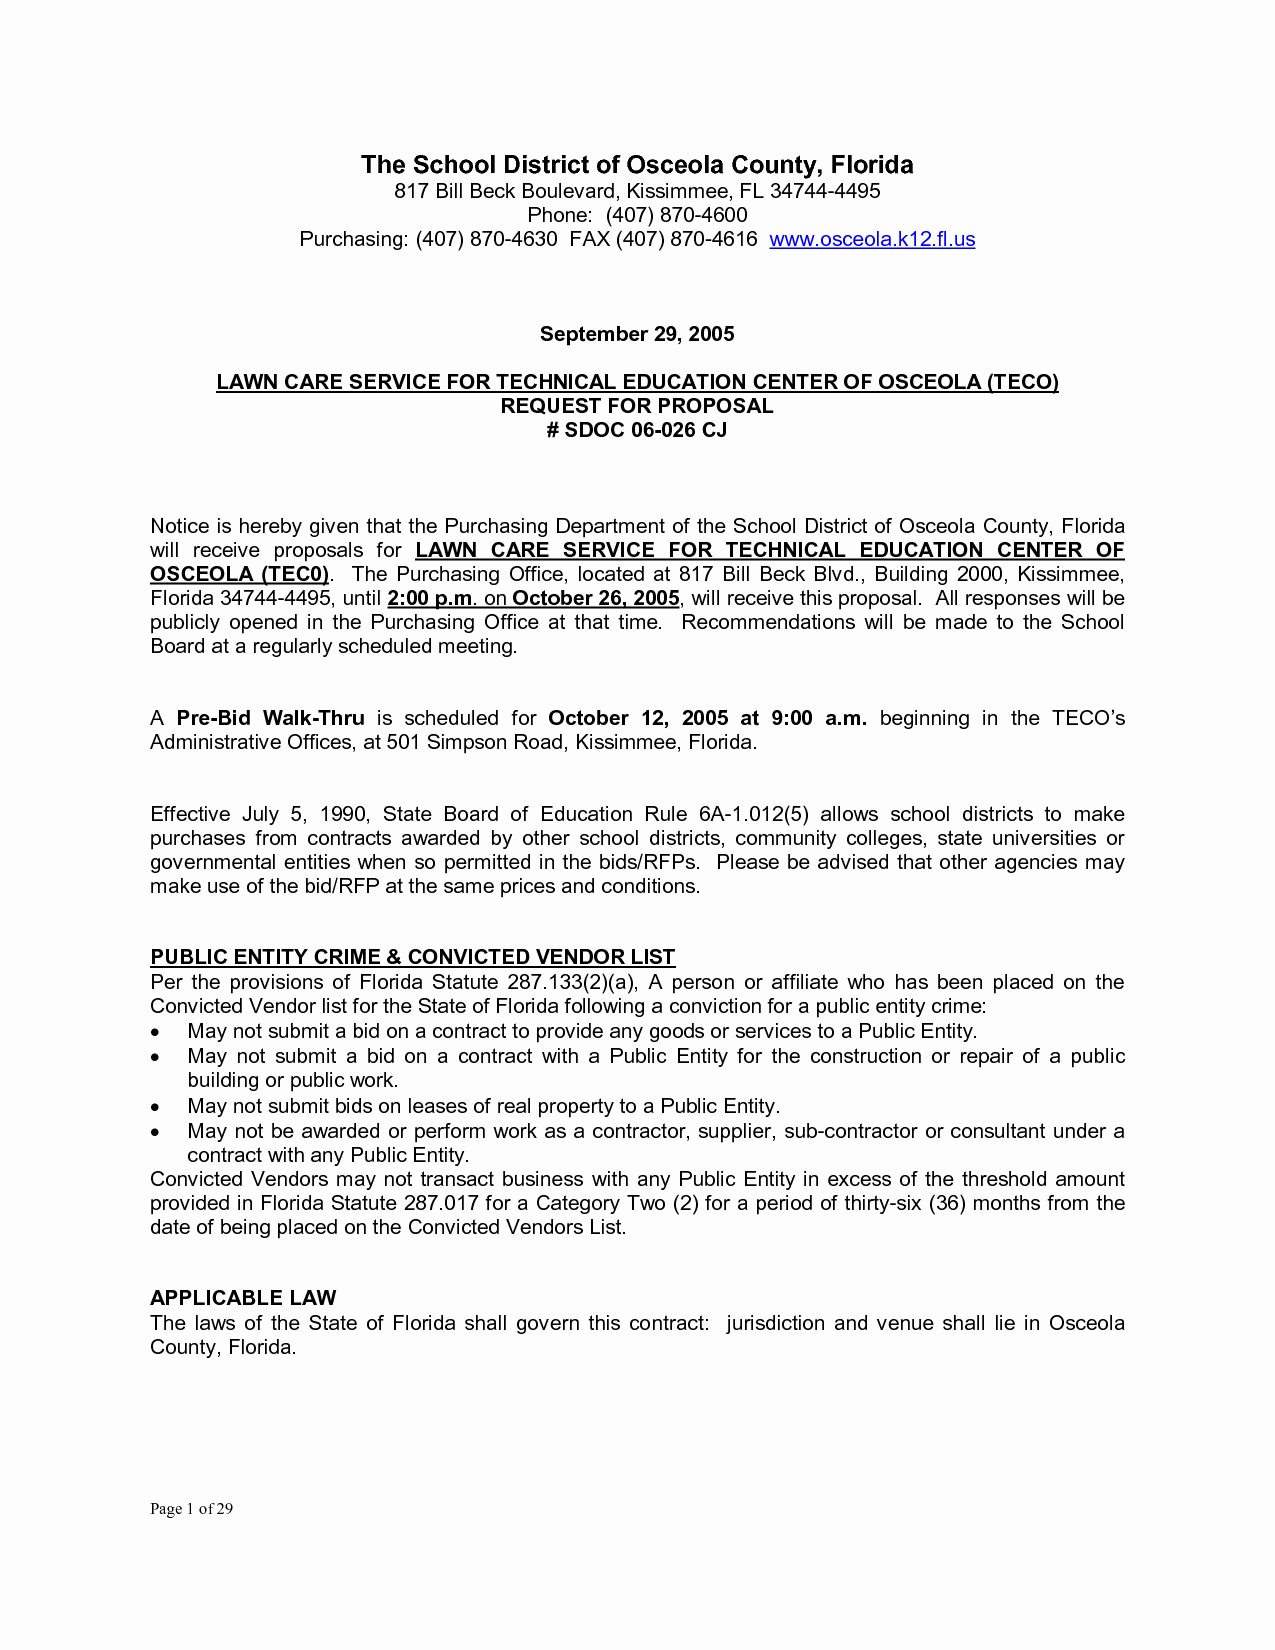 Lawn Service Contract Template Best Of Lawn Care Contract Free Printable Documents